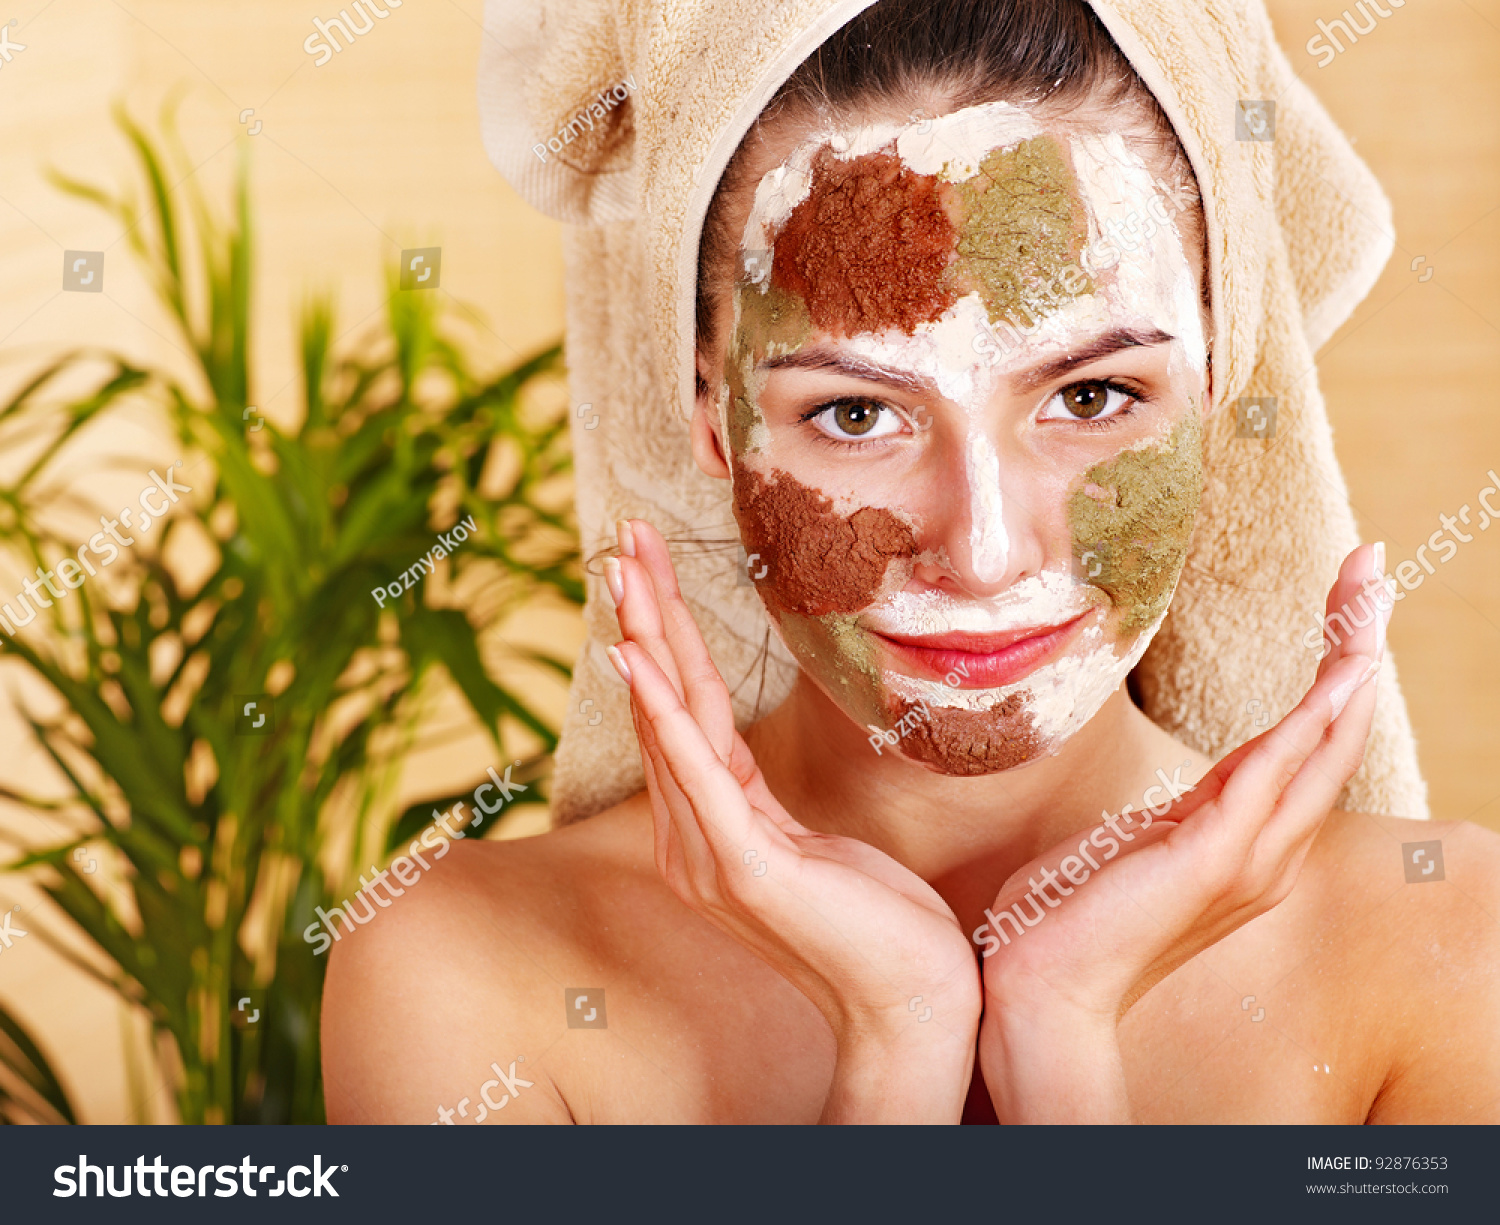 homemade facial product